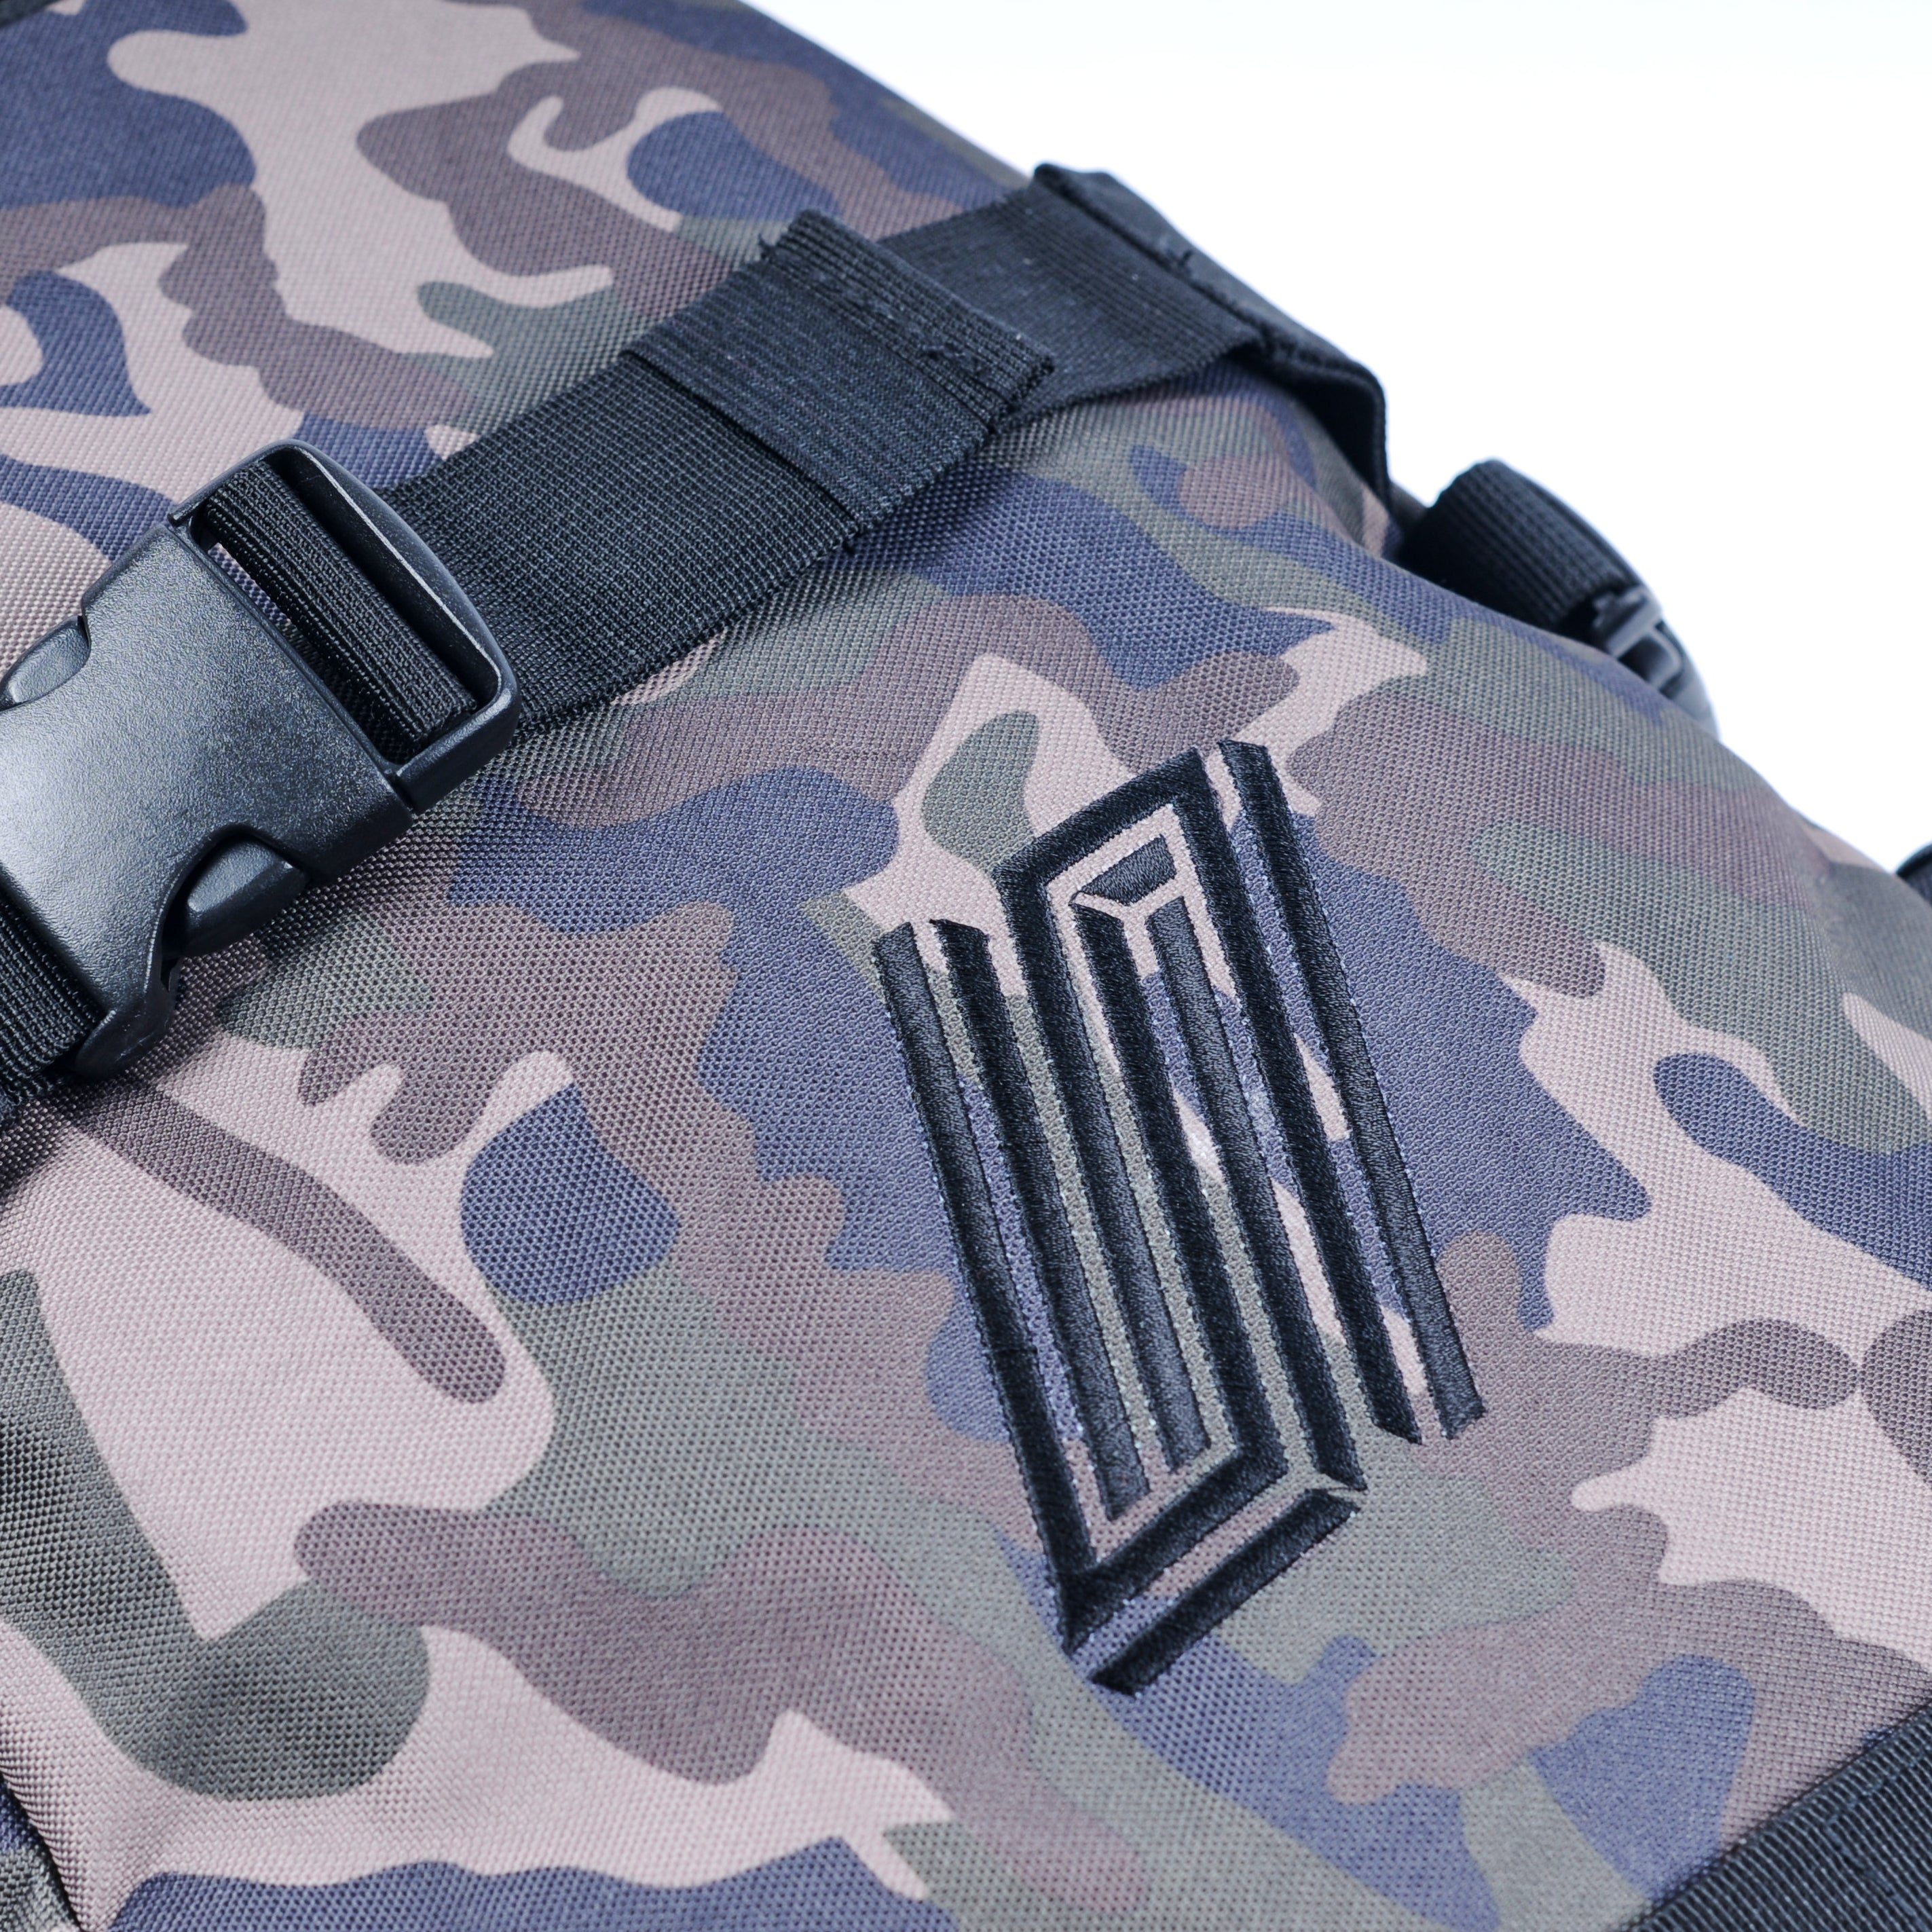 Dayward Backpack - Camo